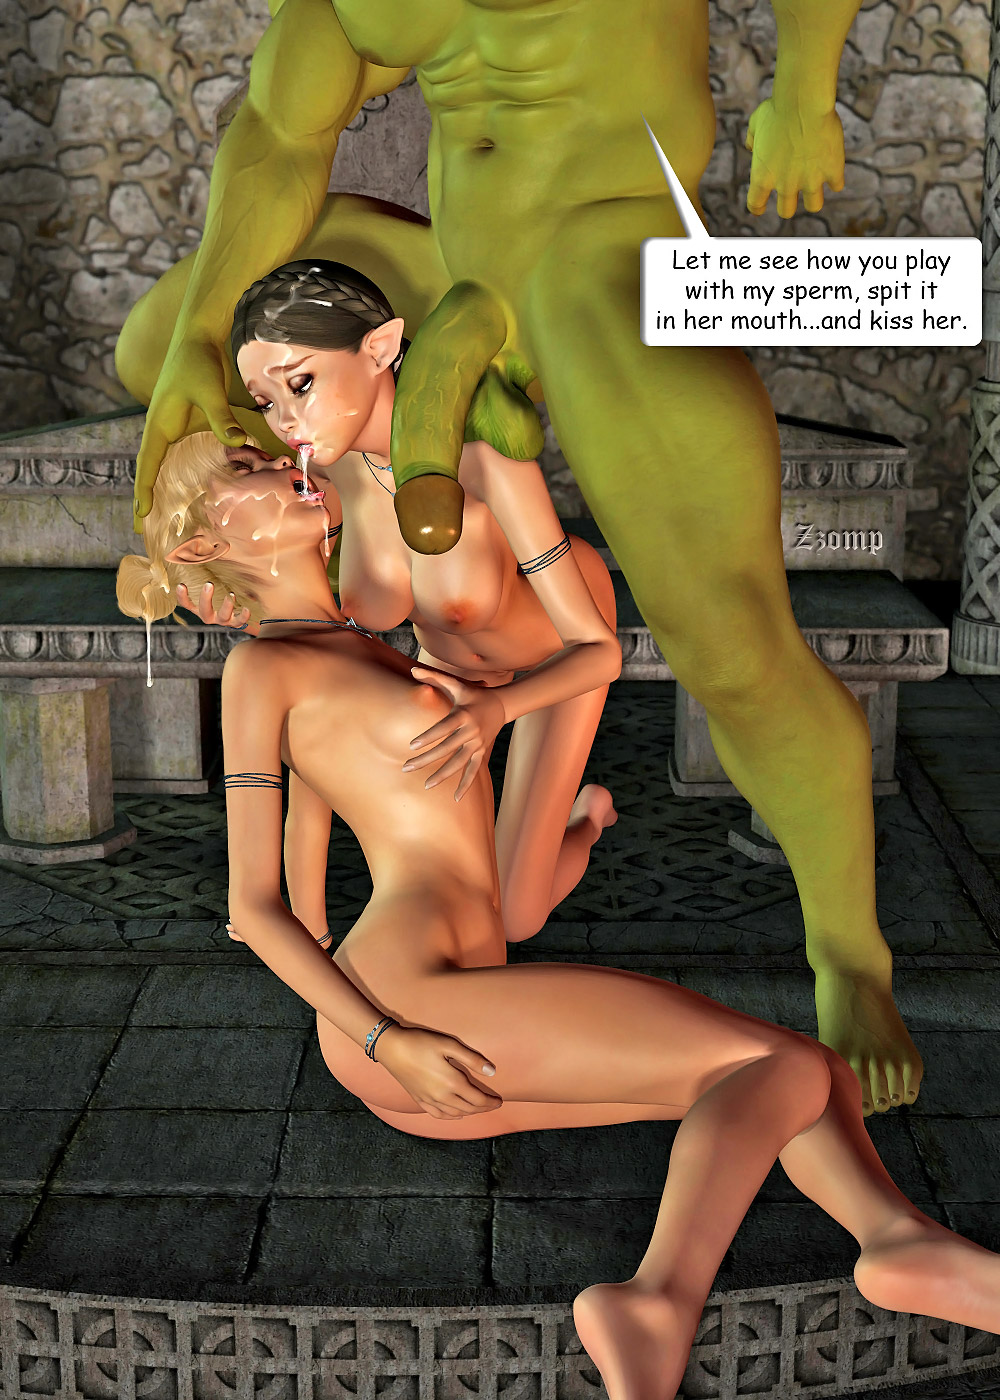 3d cartoon pron erotica girls